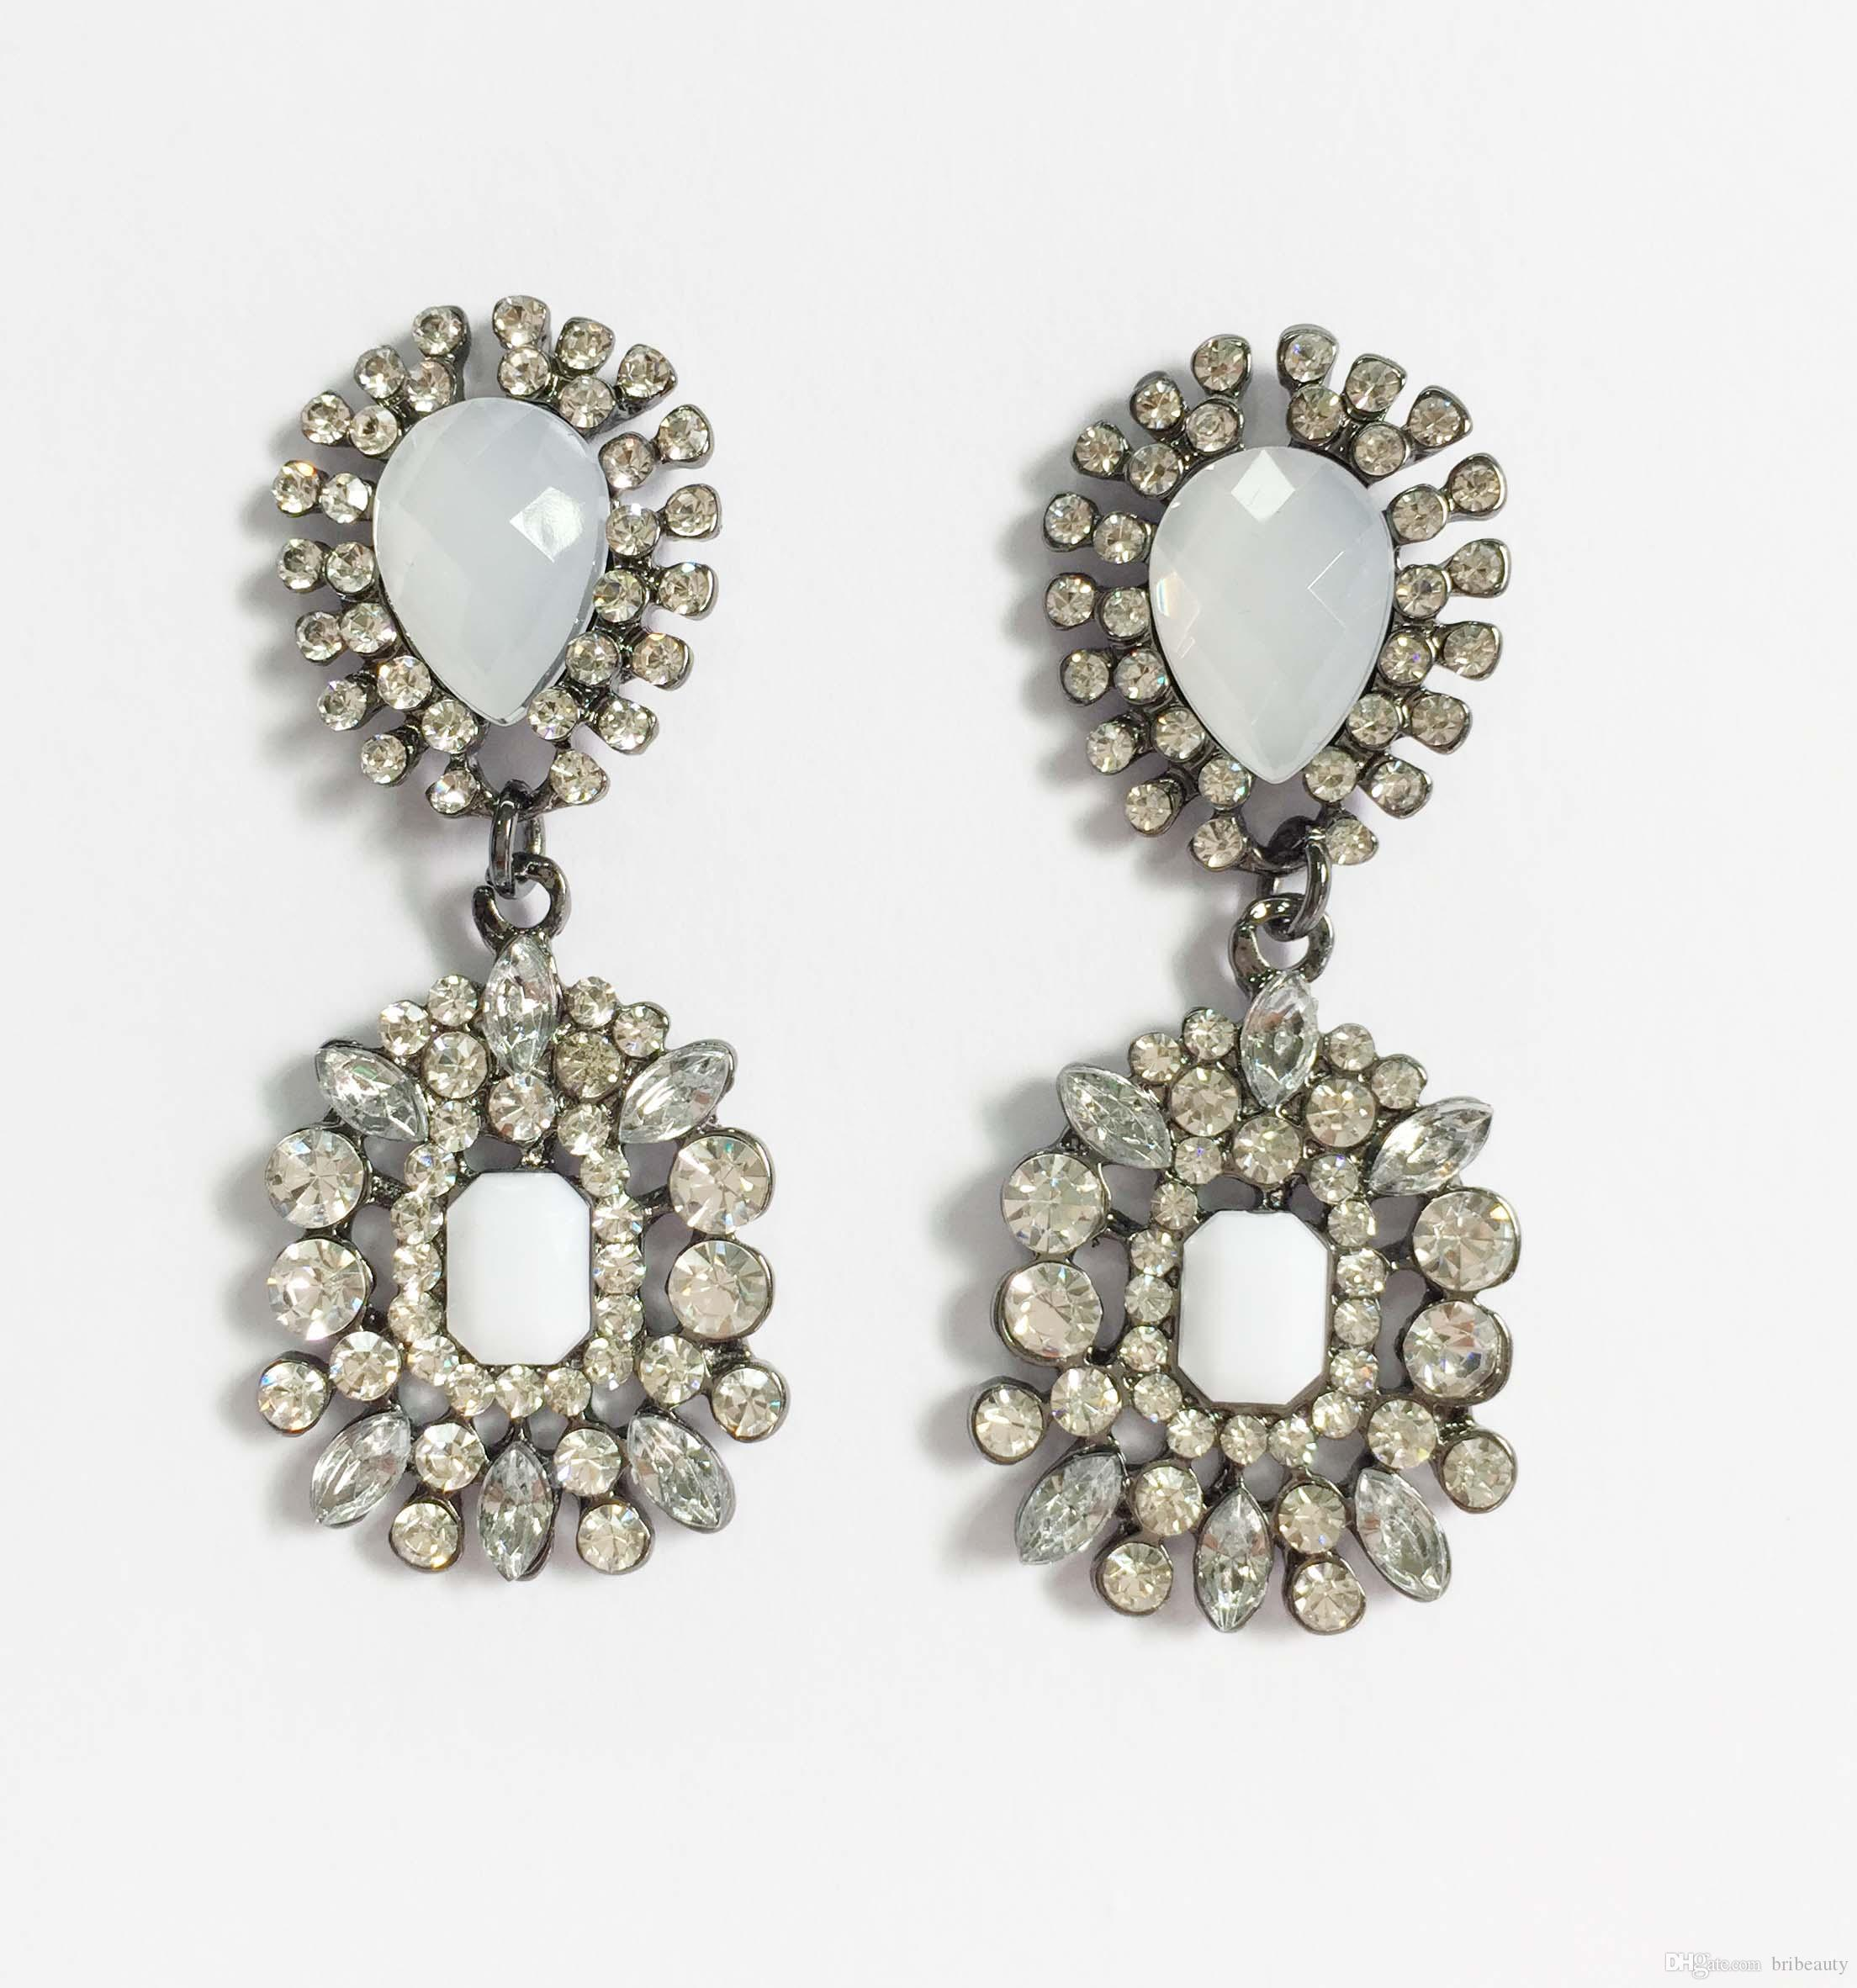 chandelier earrings pin deepa bhldn in delicia s silver jewellery